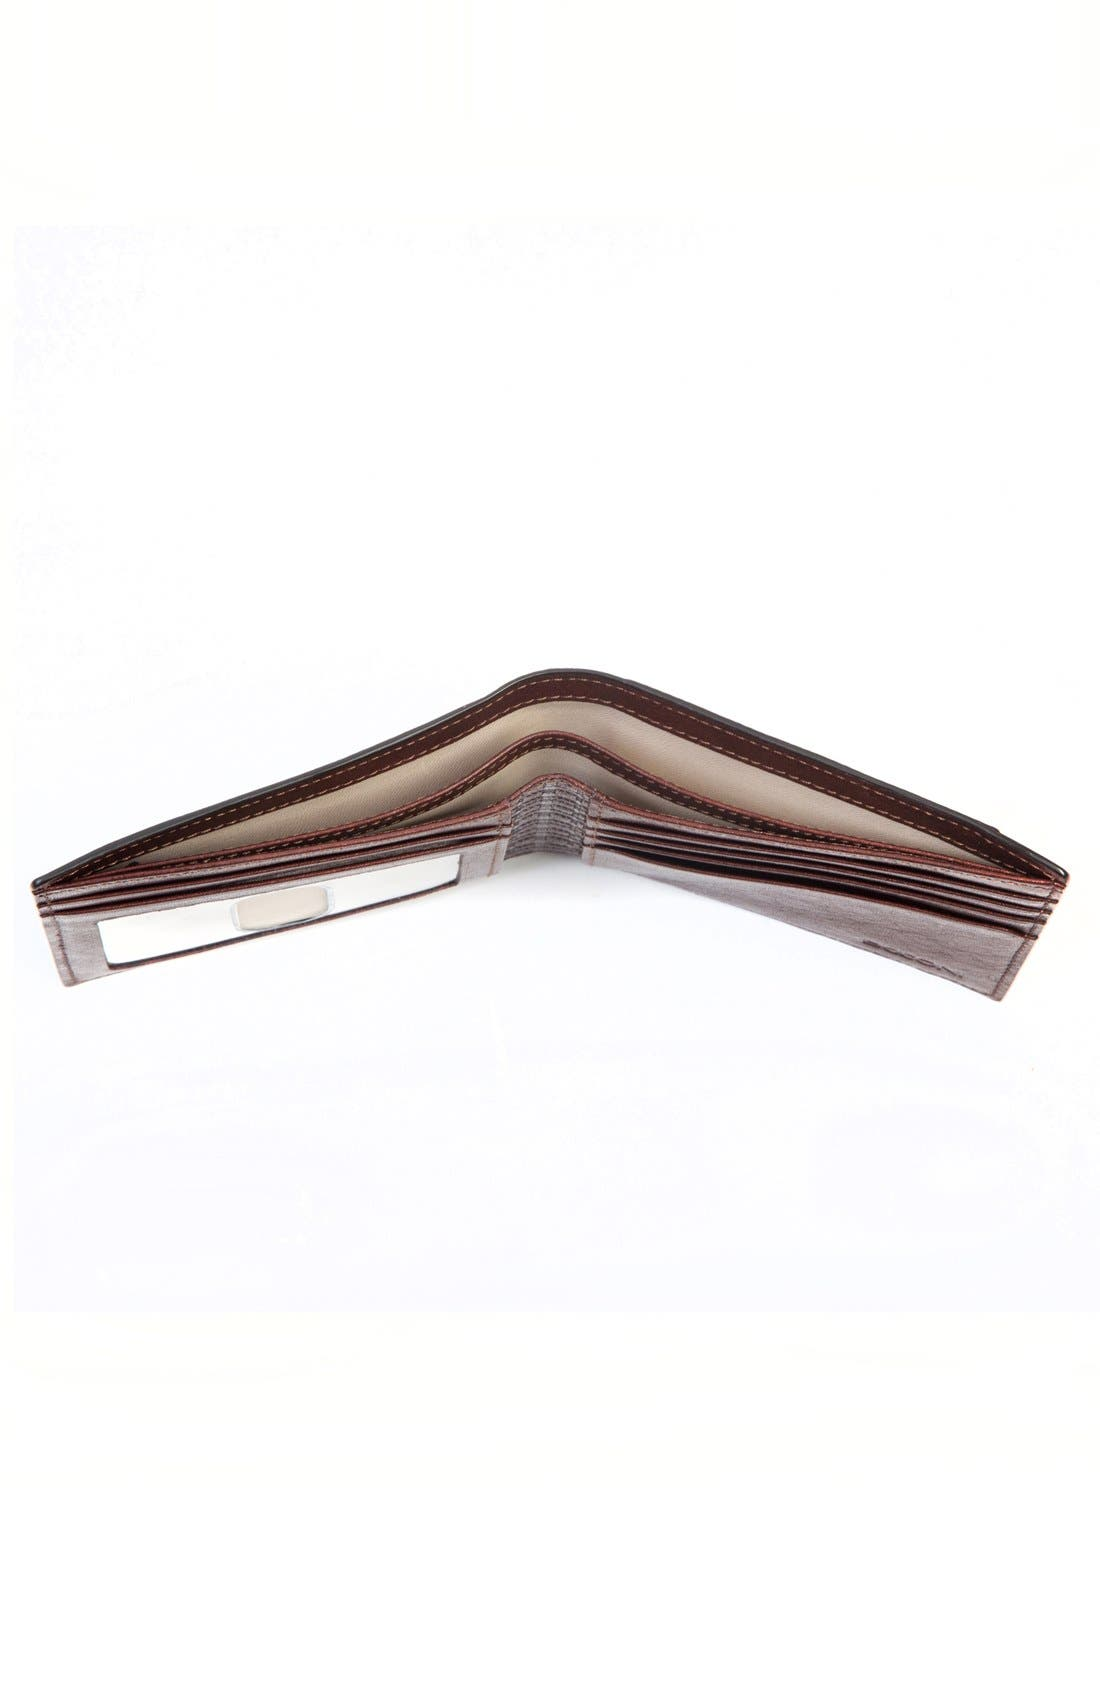 'Becker' Leather Wallet,                             Alternate thumbnail 3, color,                             215